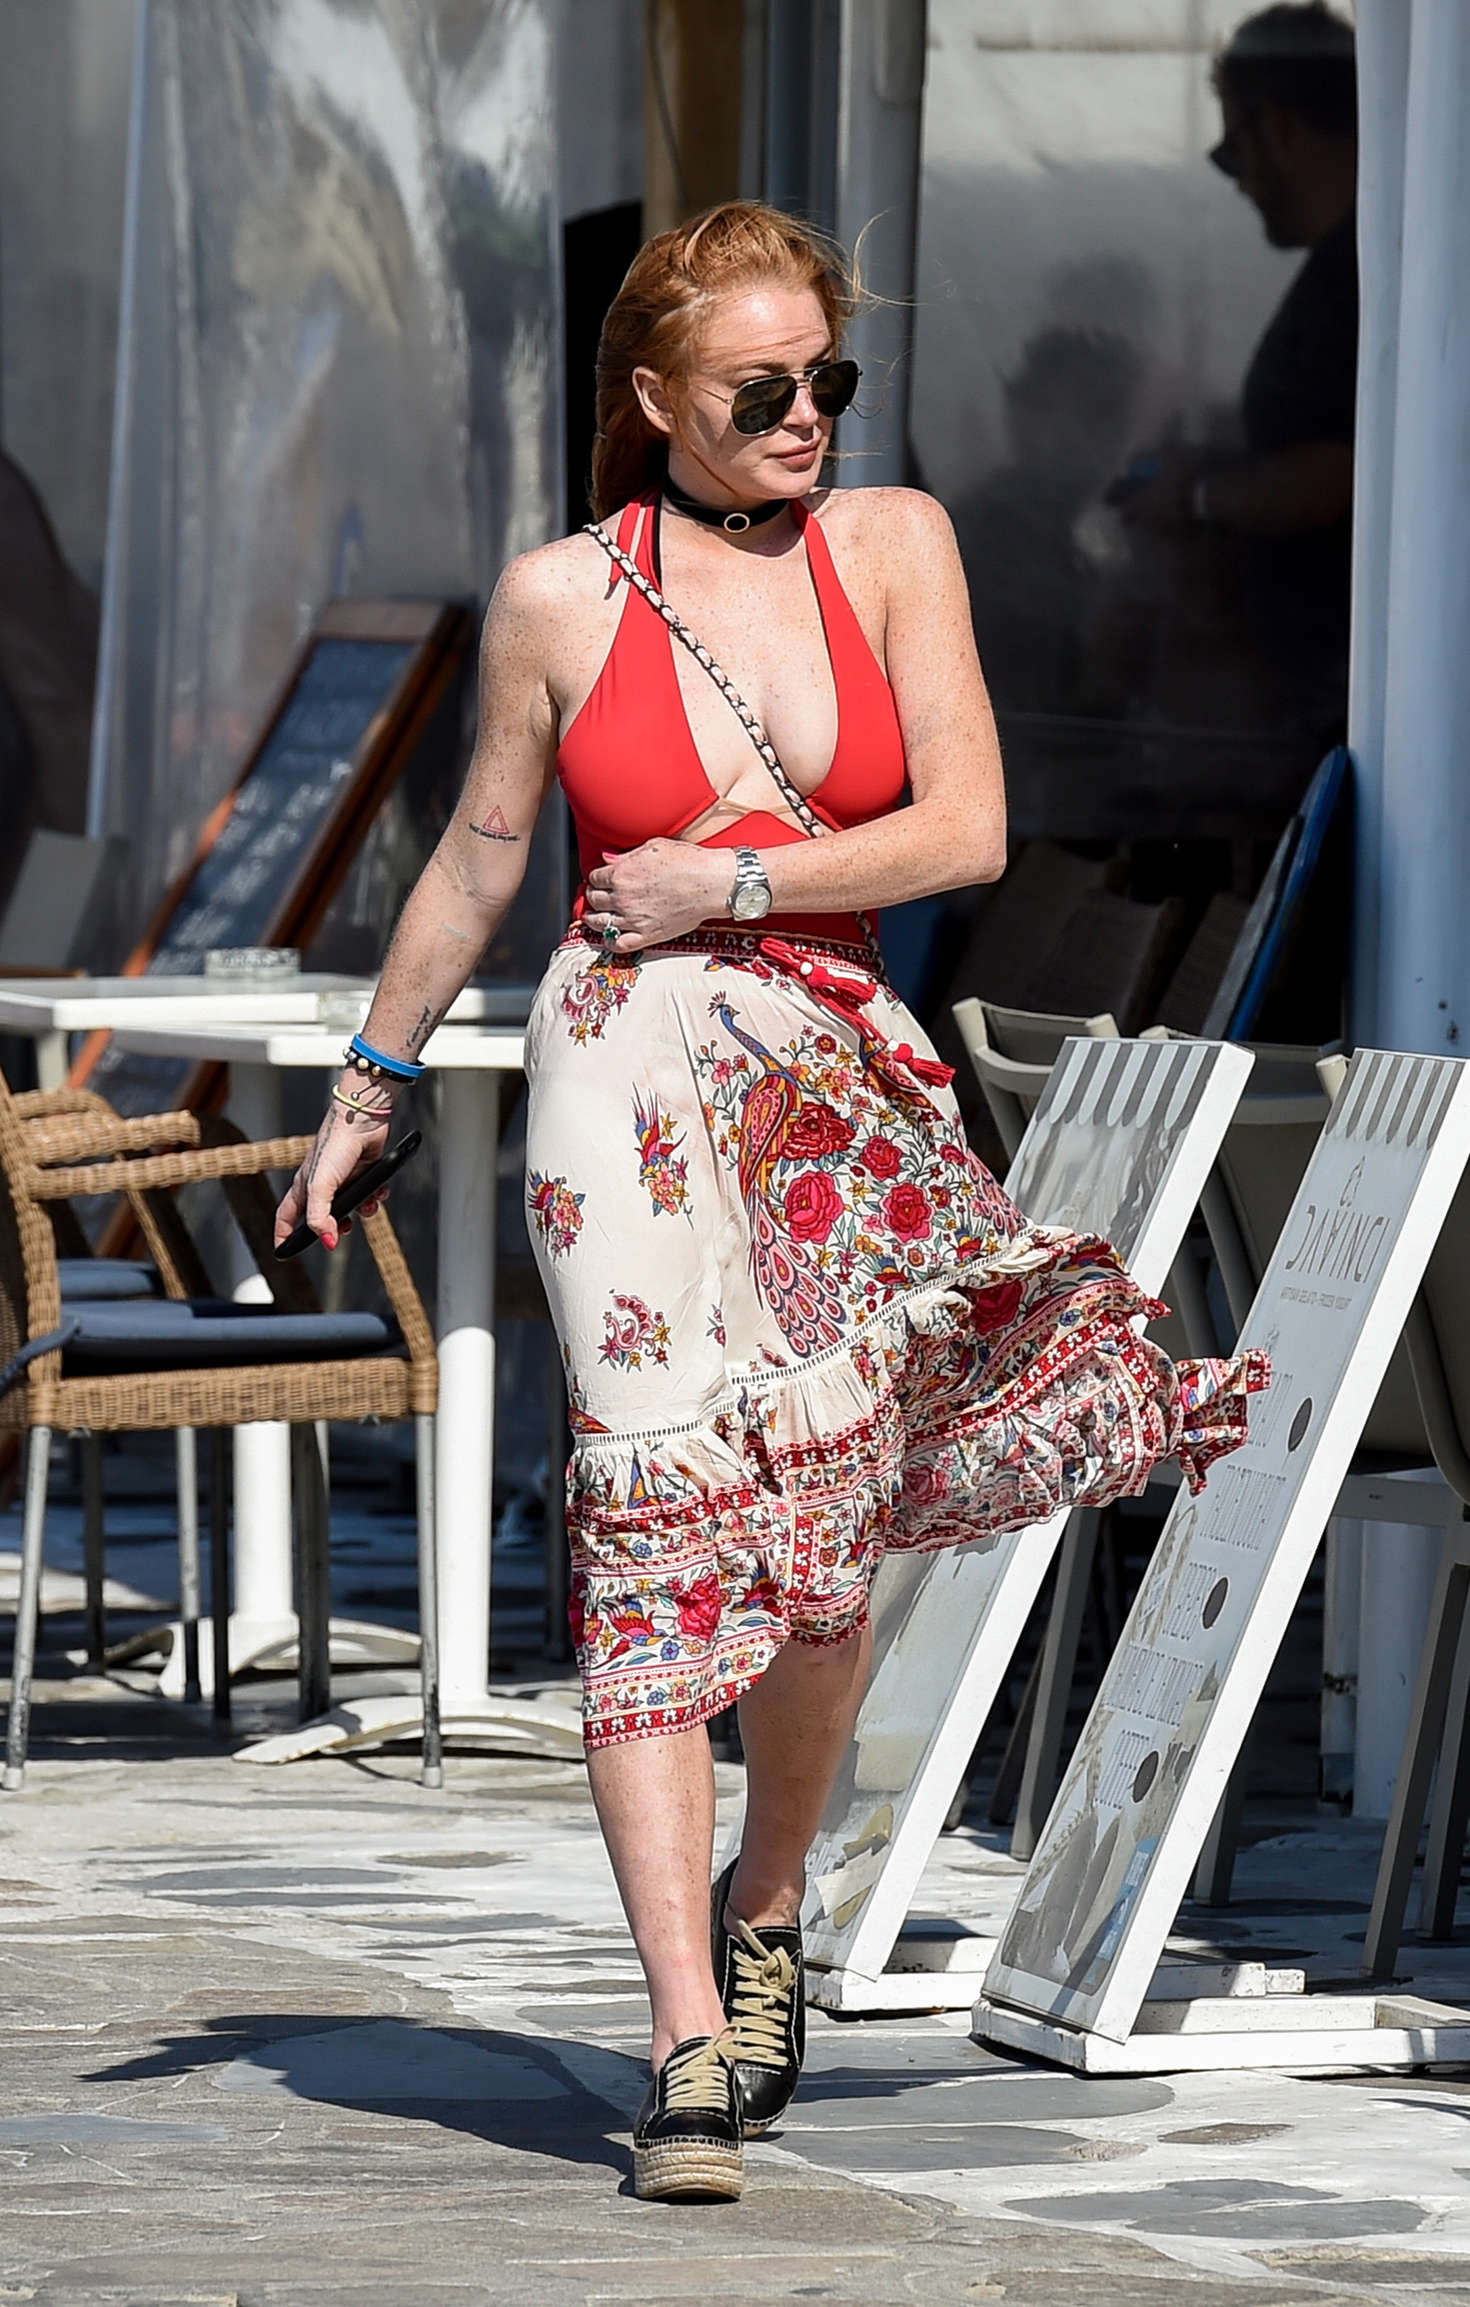 Lindsay Lohan in Summer Skirt out in Mykonos